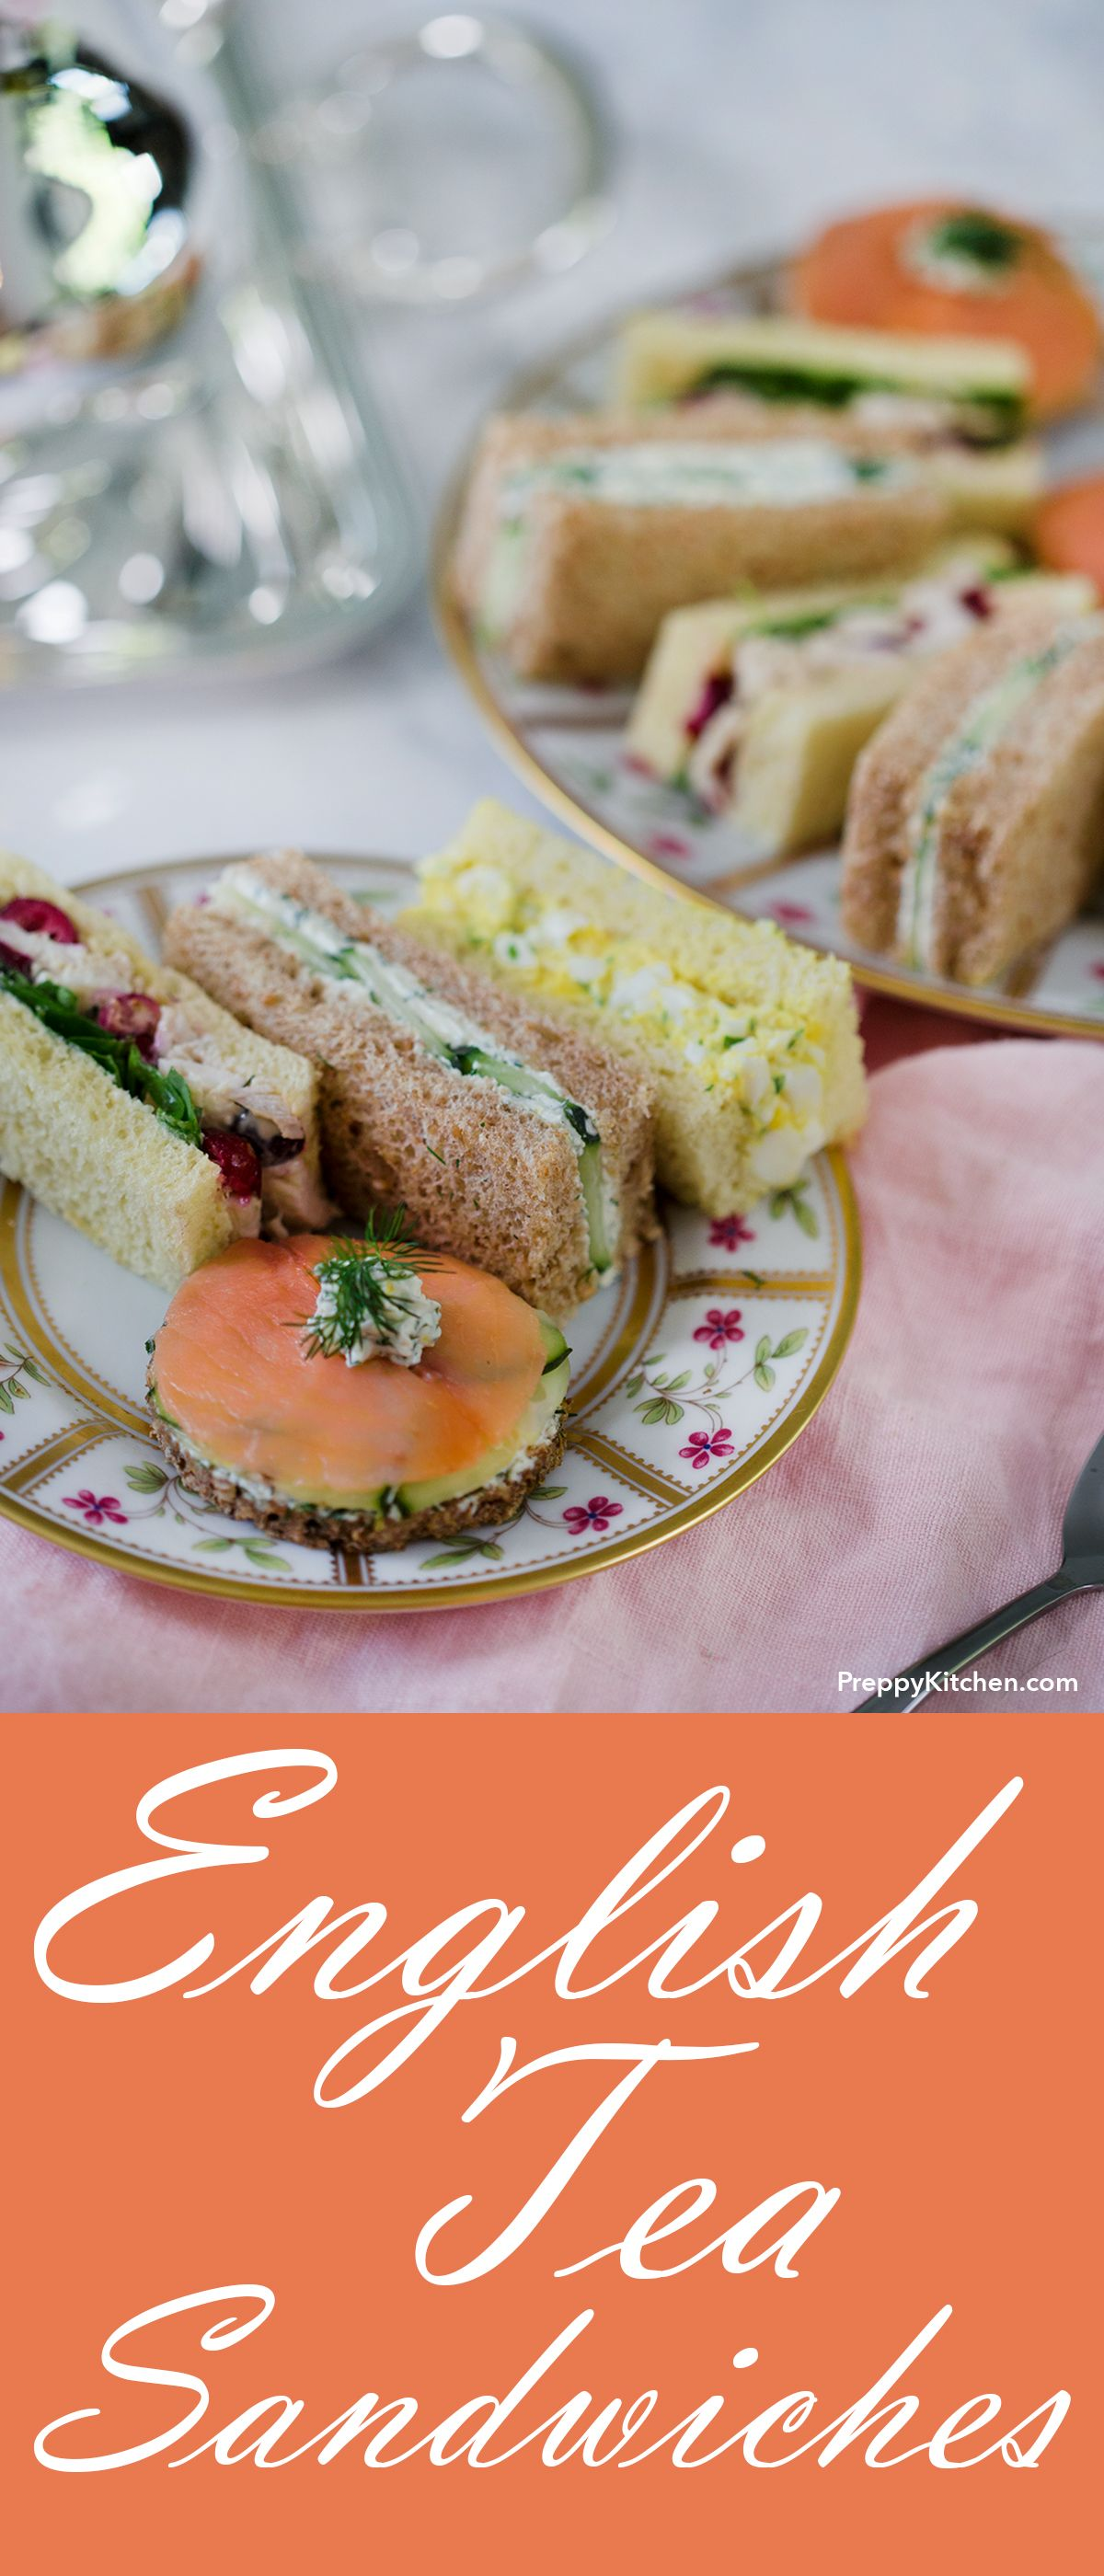 Photo of The Best 4 Traditional English Tea Sandwiches | #teatime #sandwiches #fingerfood…